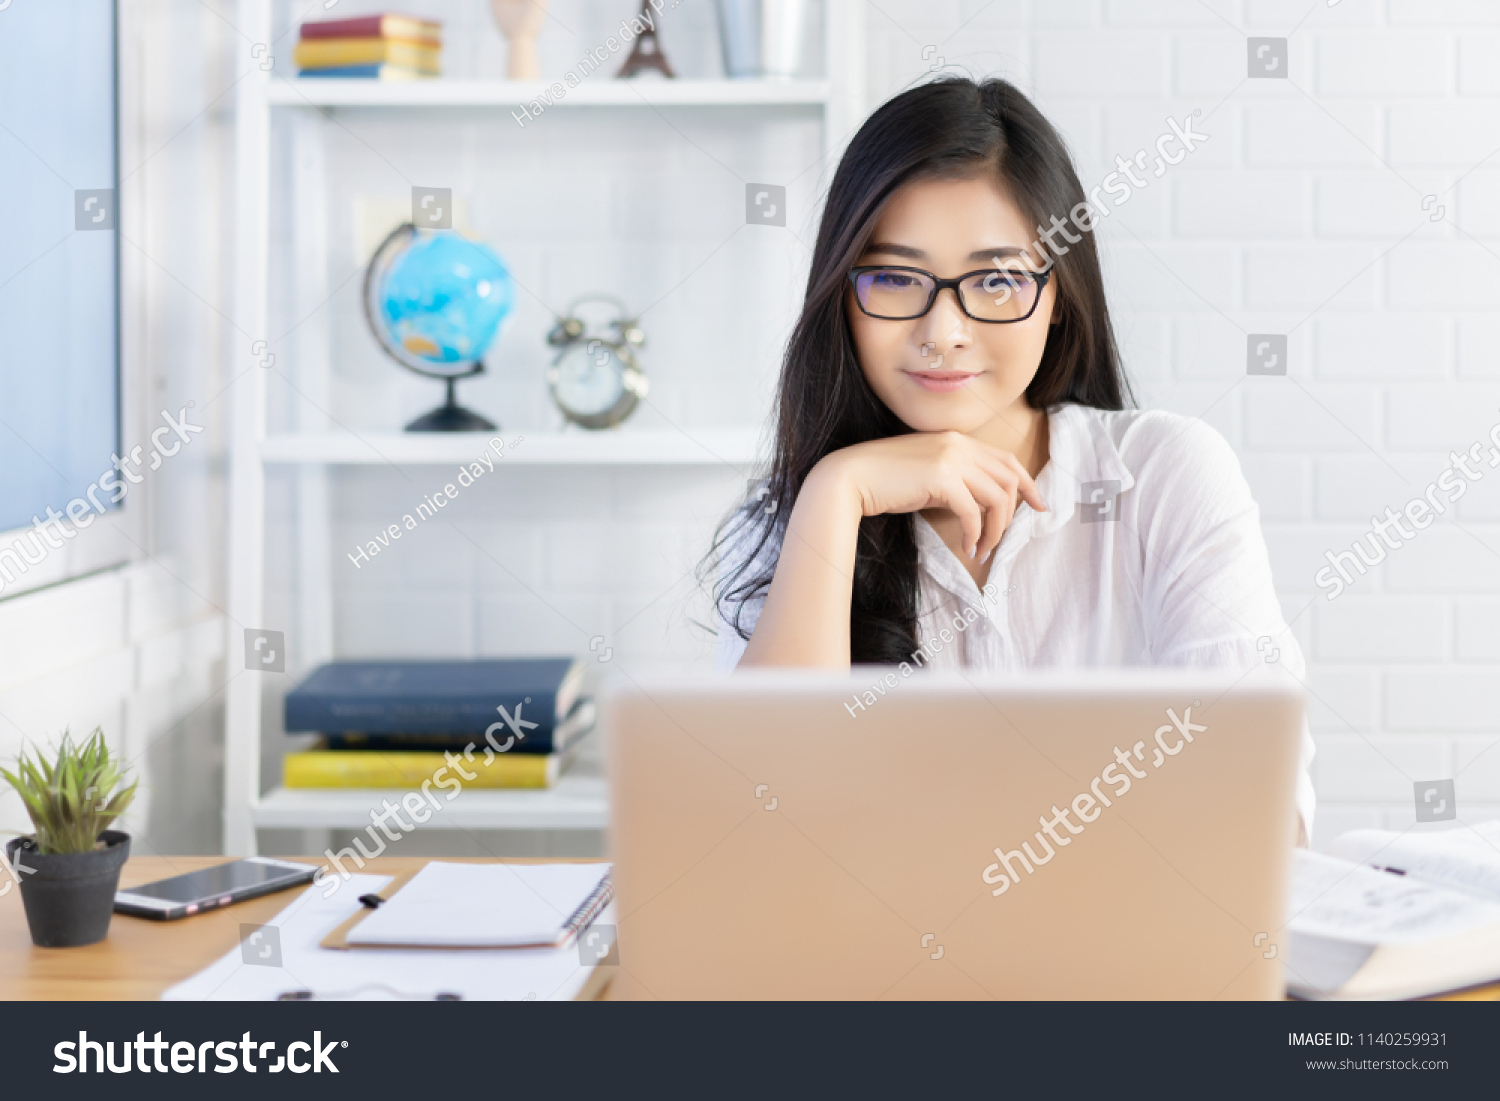 Education study abroad,Asian student girl with glasses look at laptop while doing homework making video call abroad using internet friend connection, business women use computer analysis finance data  #1140259931